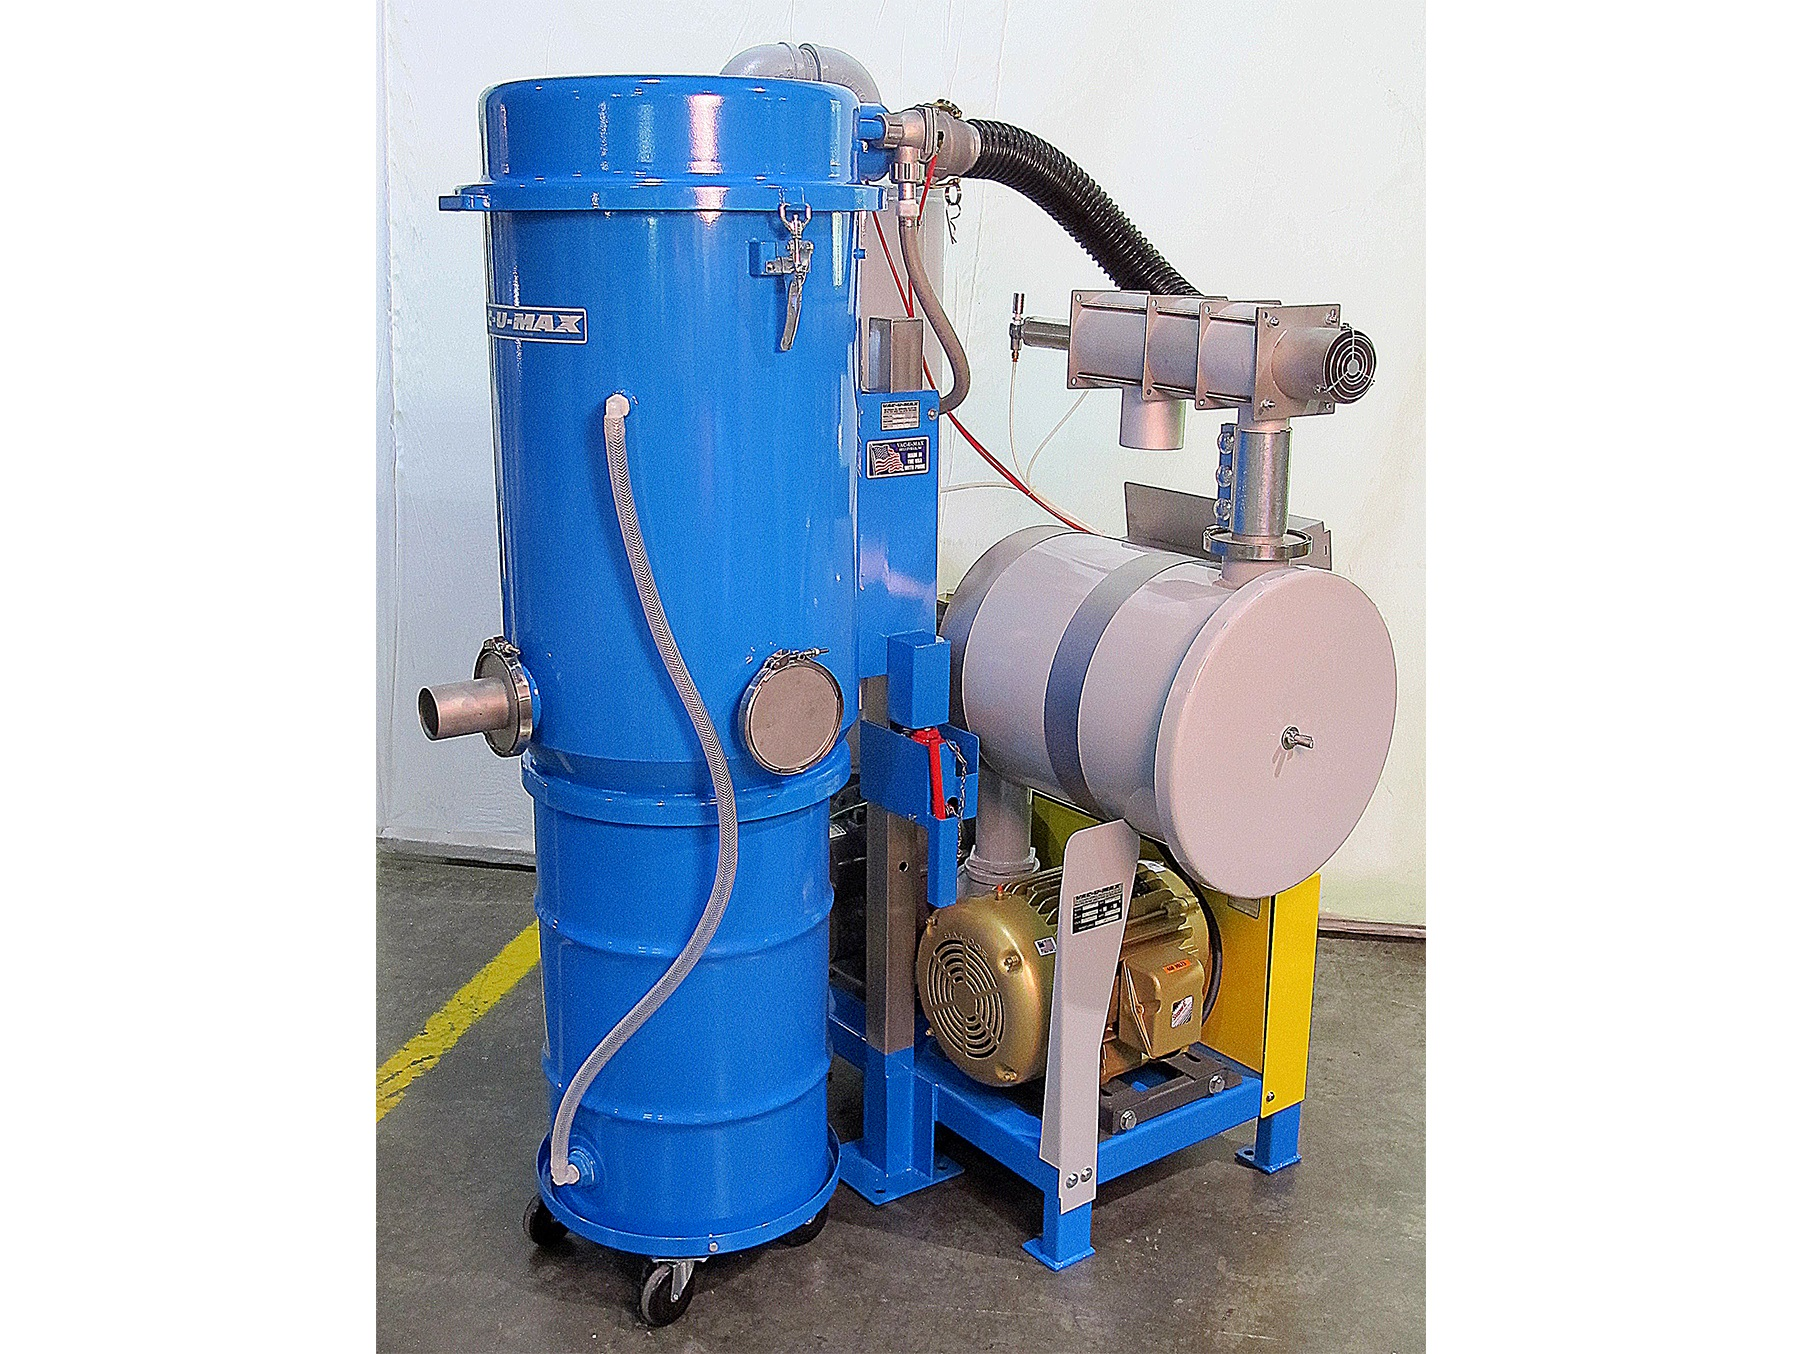 Central Vacuum Cleaning System